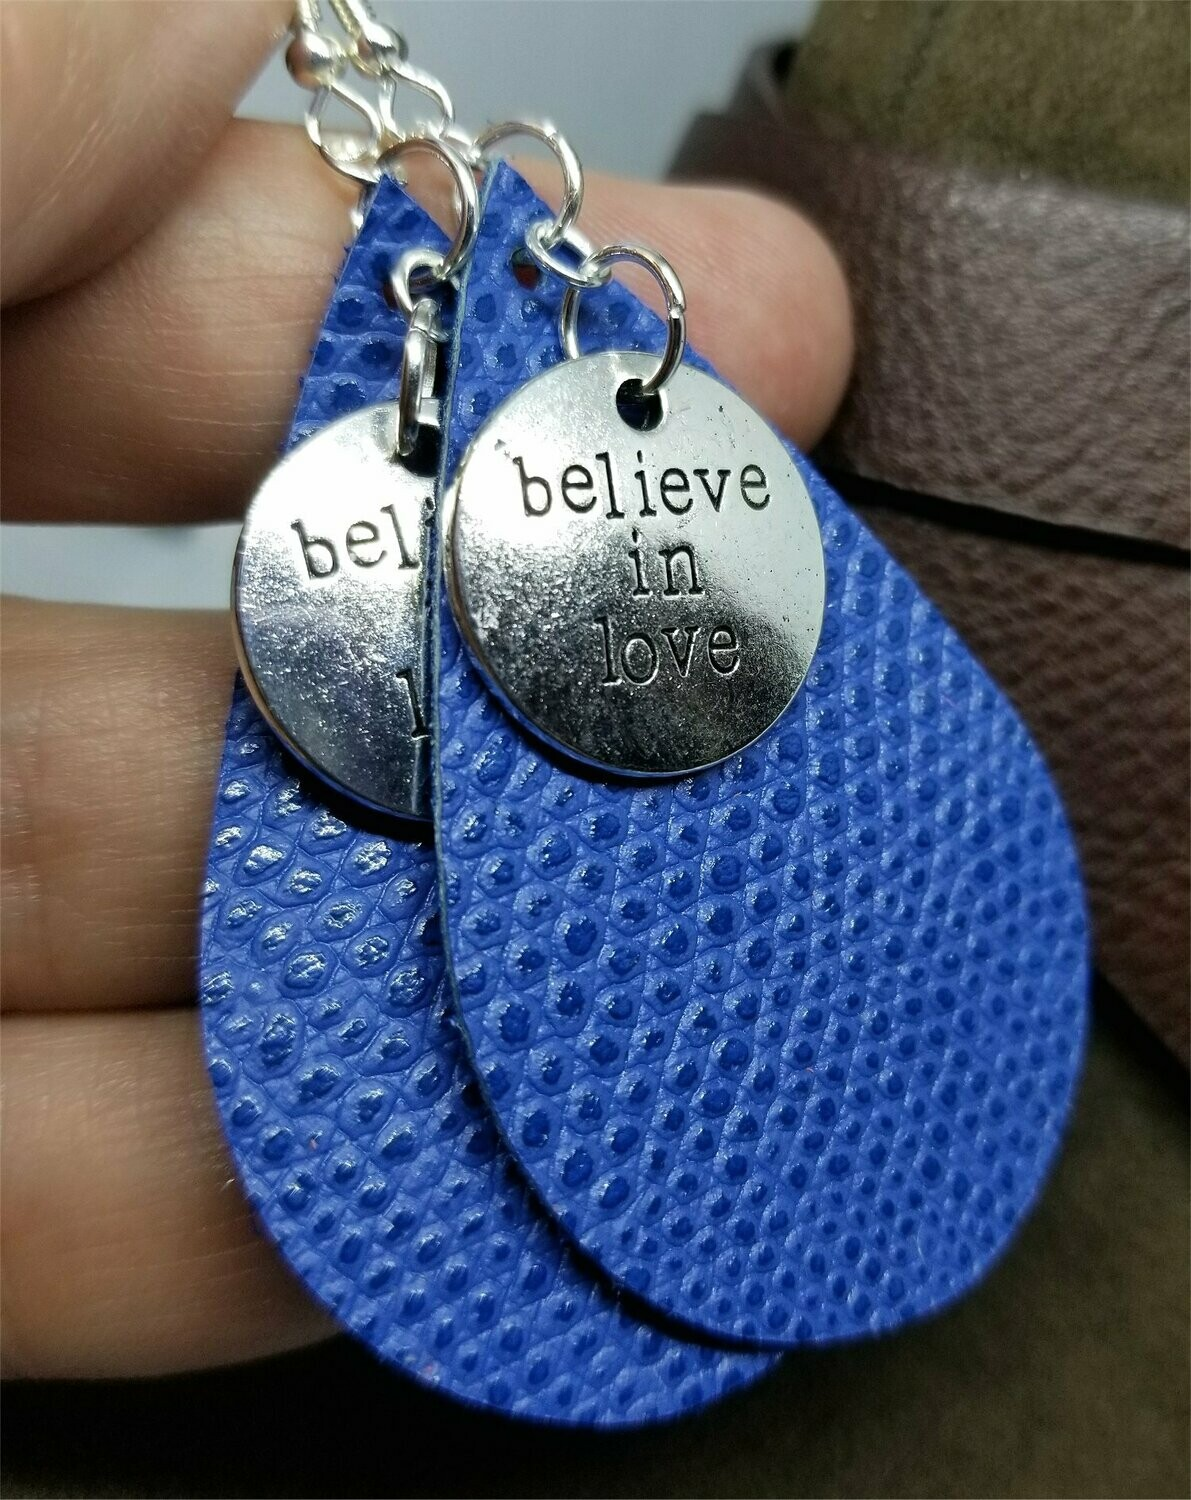 Blue Scale Real Leather Earrings with Believe In Love Charms